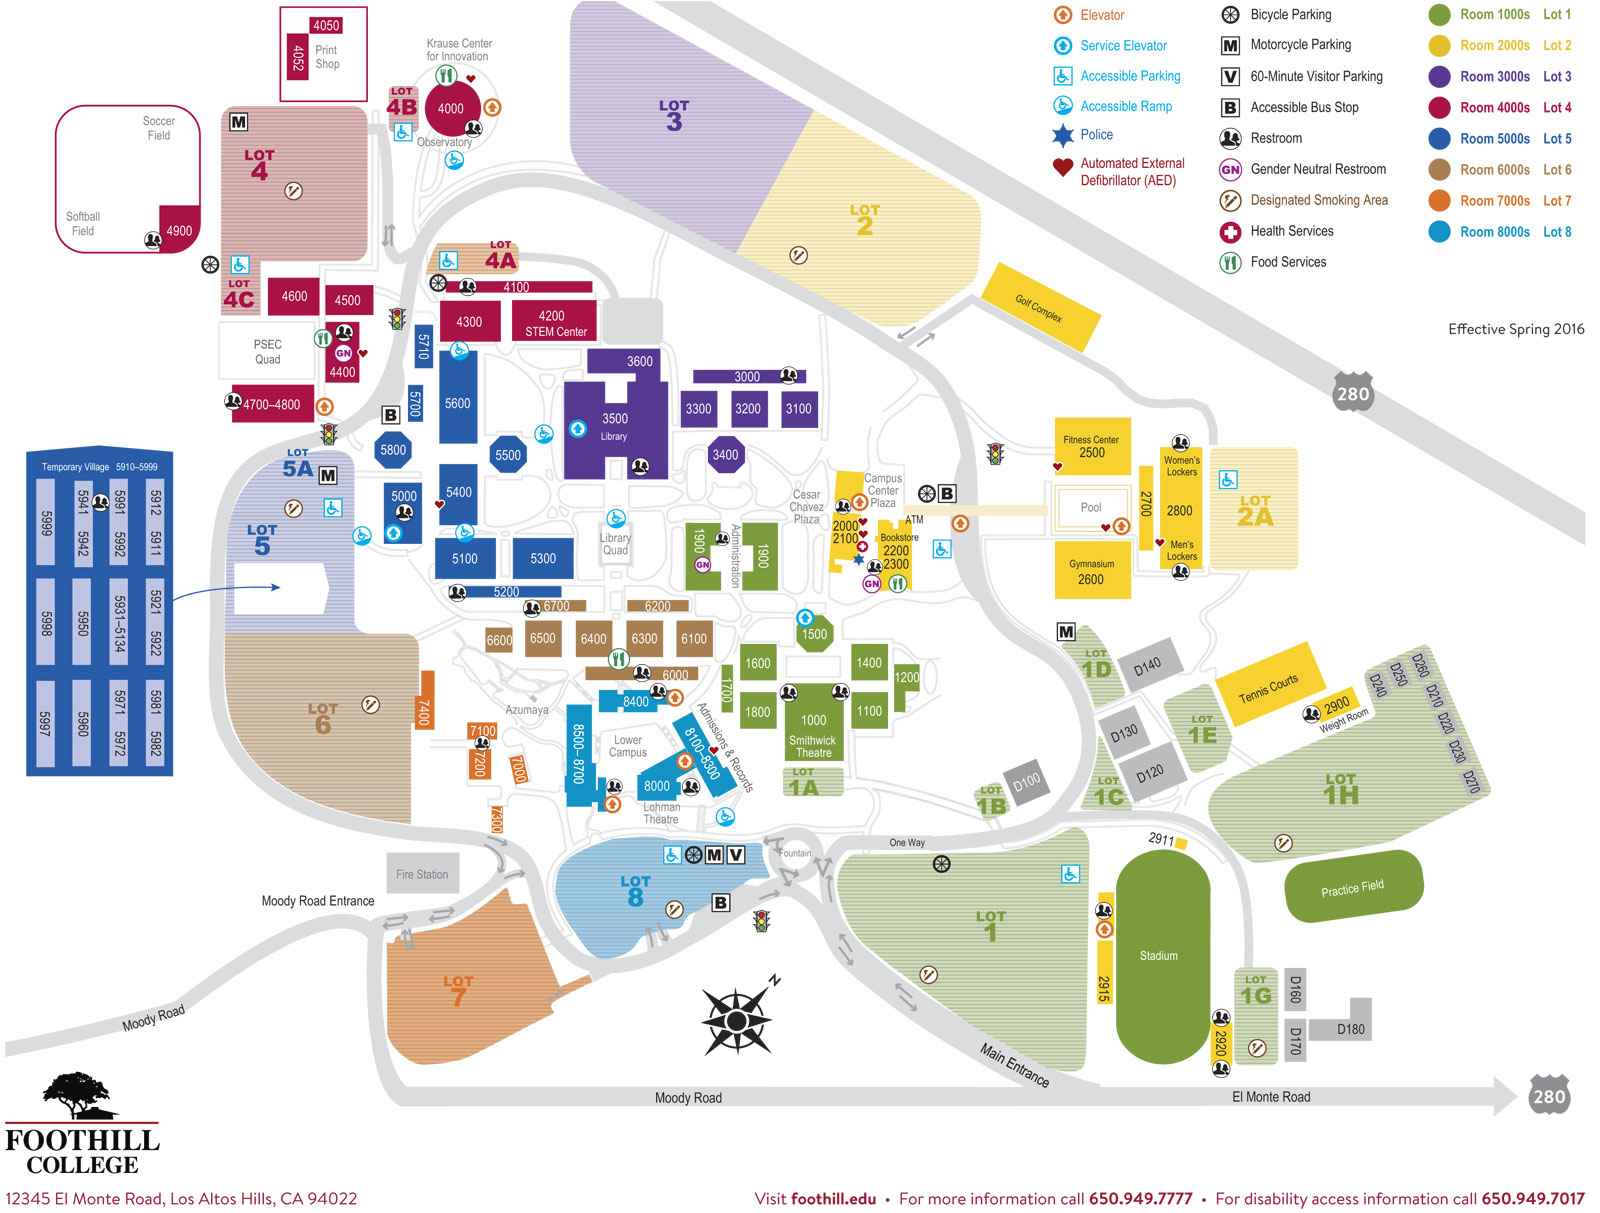 Foothill Campus Map My Blog - Us campus map